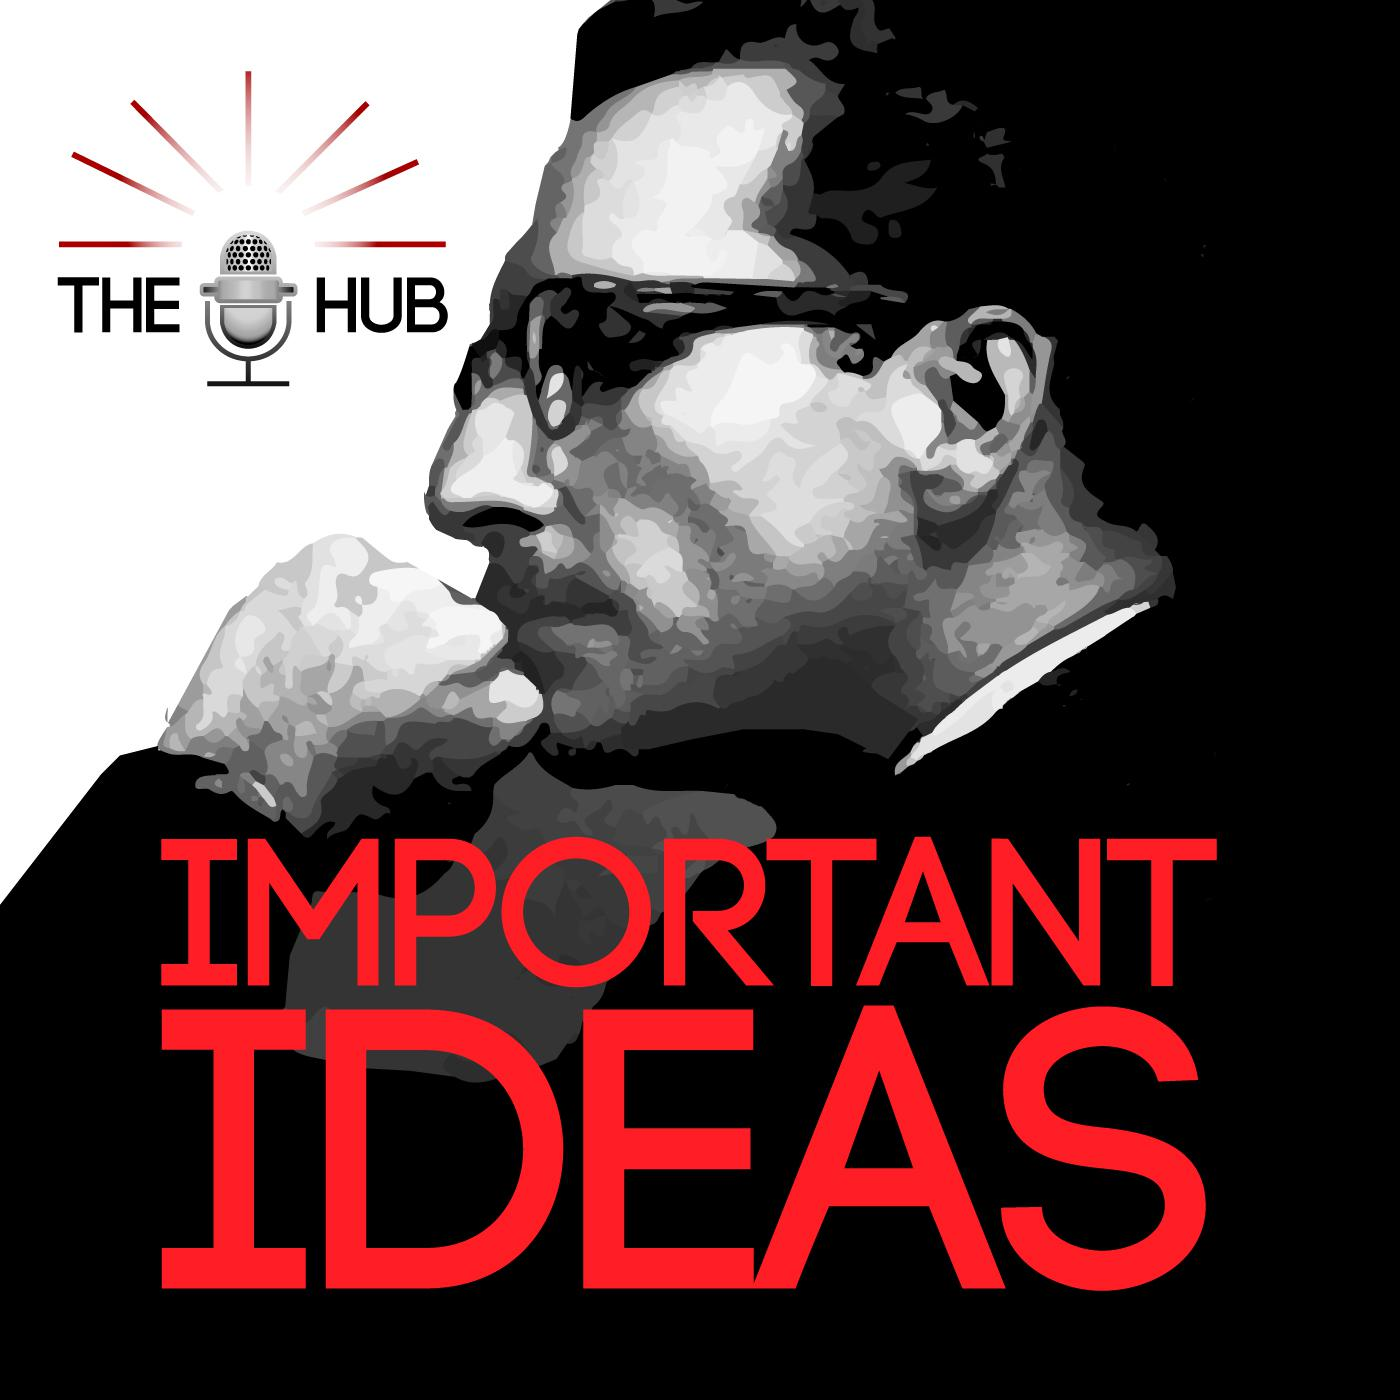 The Hub for Important Ideas